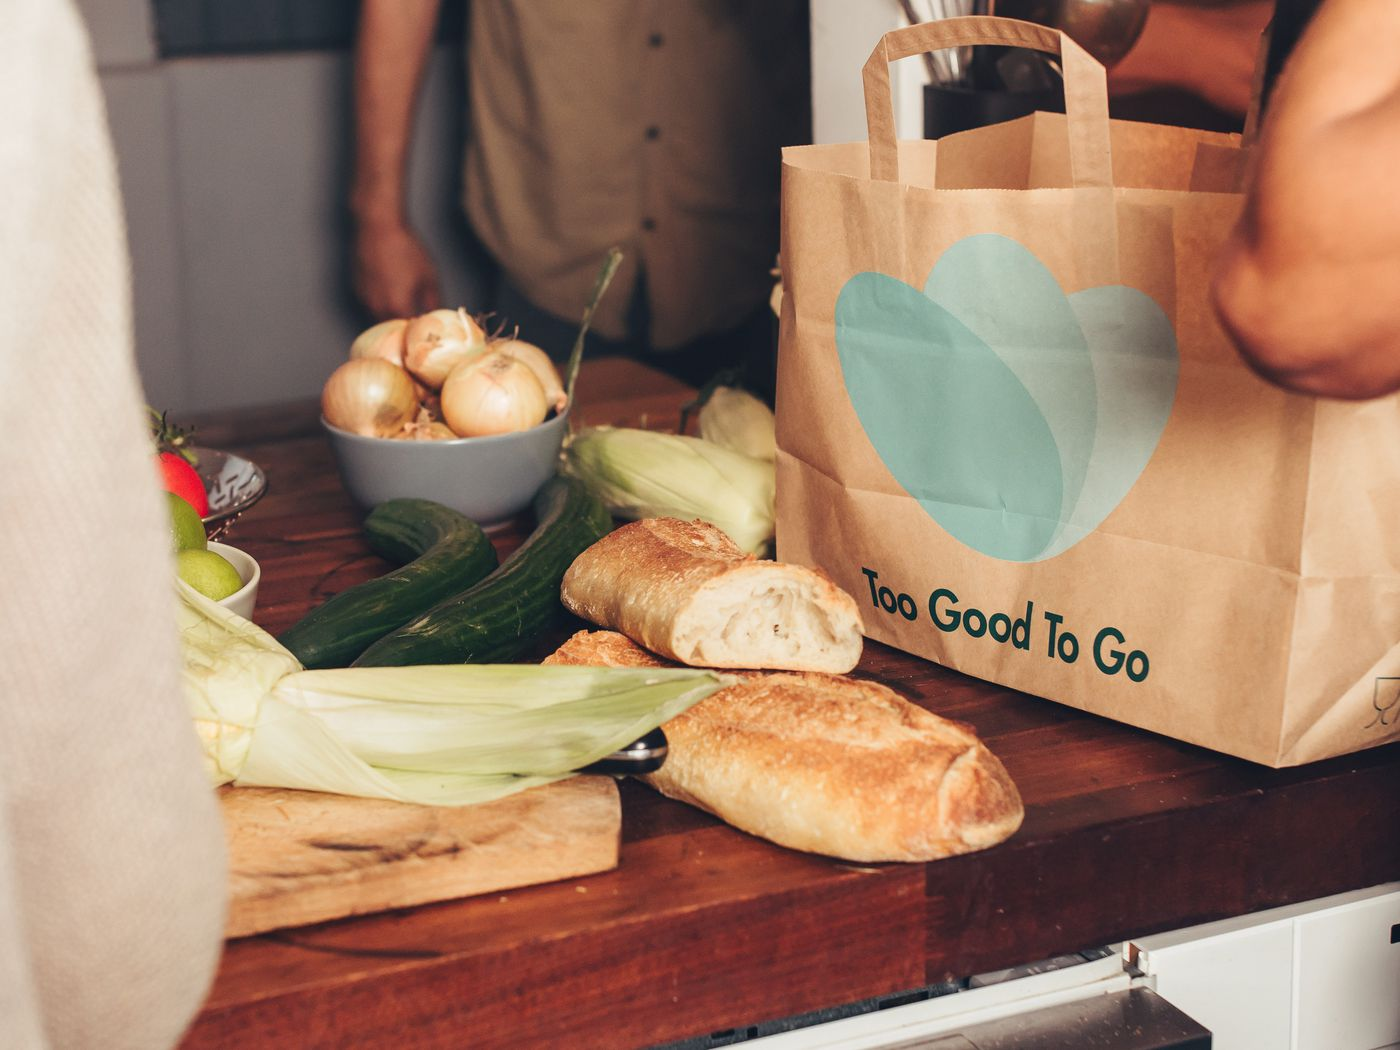 Food Waste App Too Good To Go Launches in NYC to Reduce Restaurant Waste -  Eater NY